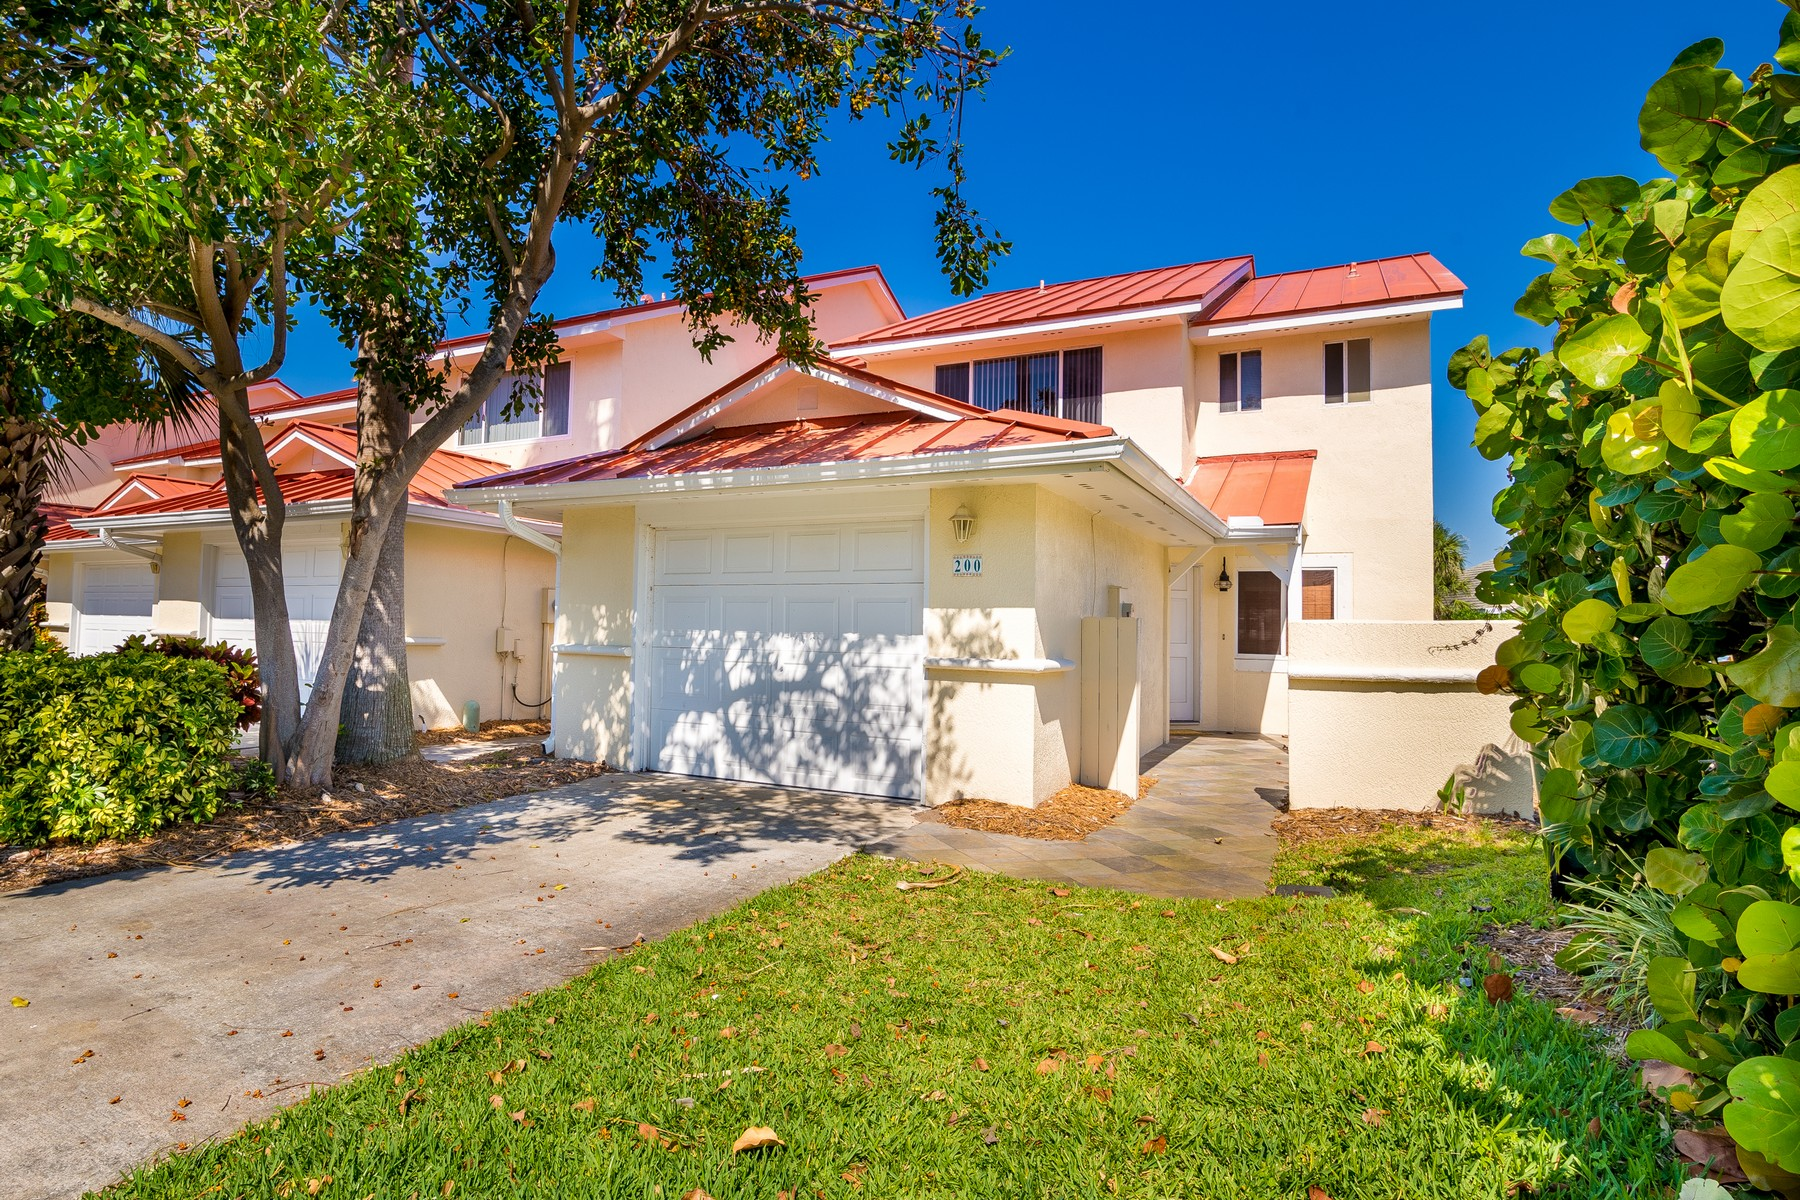 Townhouse for Sale at 200 Oceanway Drive Melbourne Beach, Florida, 32951 United States